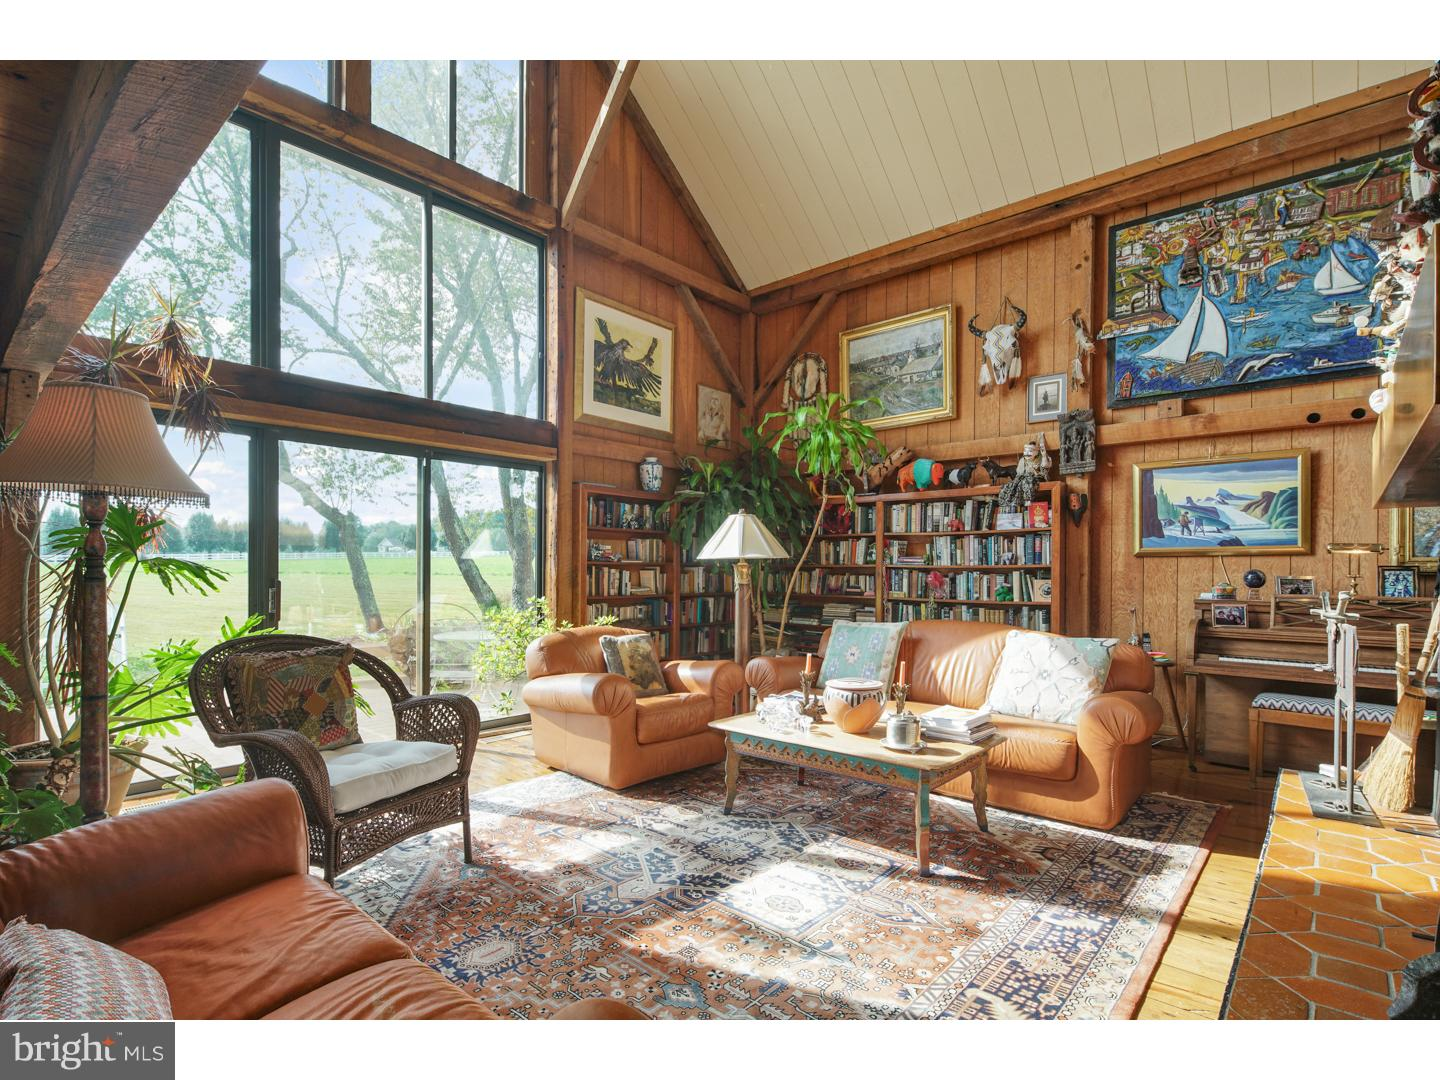 Single Family Home for Sale at 6234 PIDCOCK CREEK Road Solebury Township, Pennsylvania 18938 United StatesMunicipality: Solebury Township